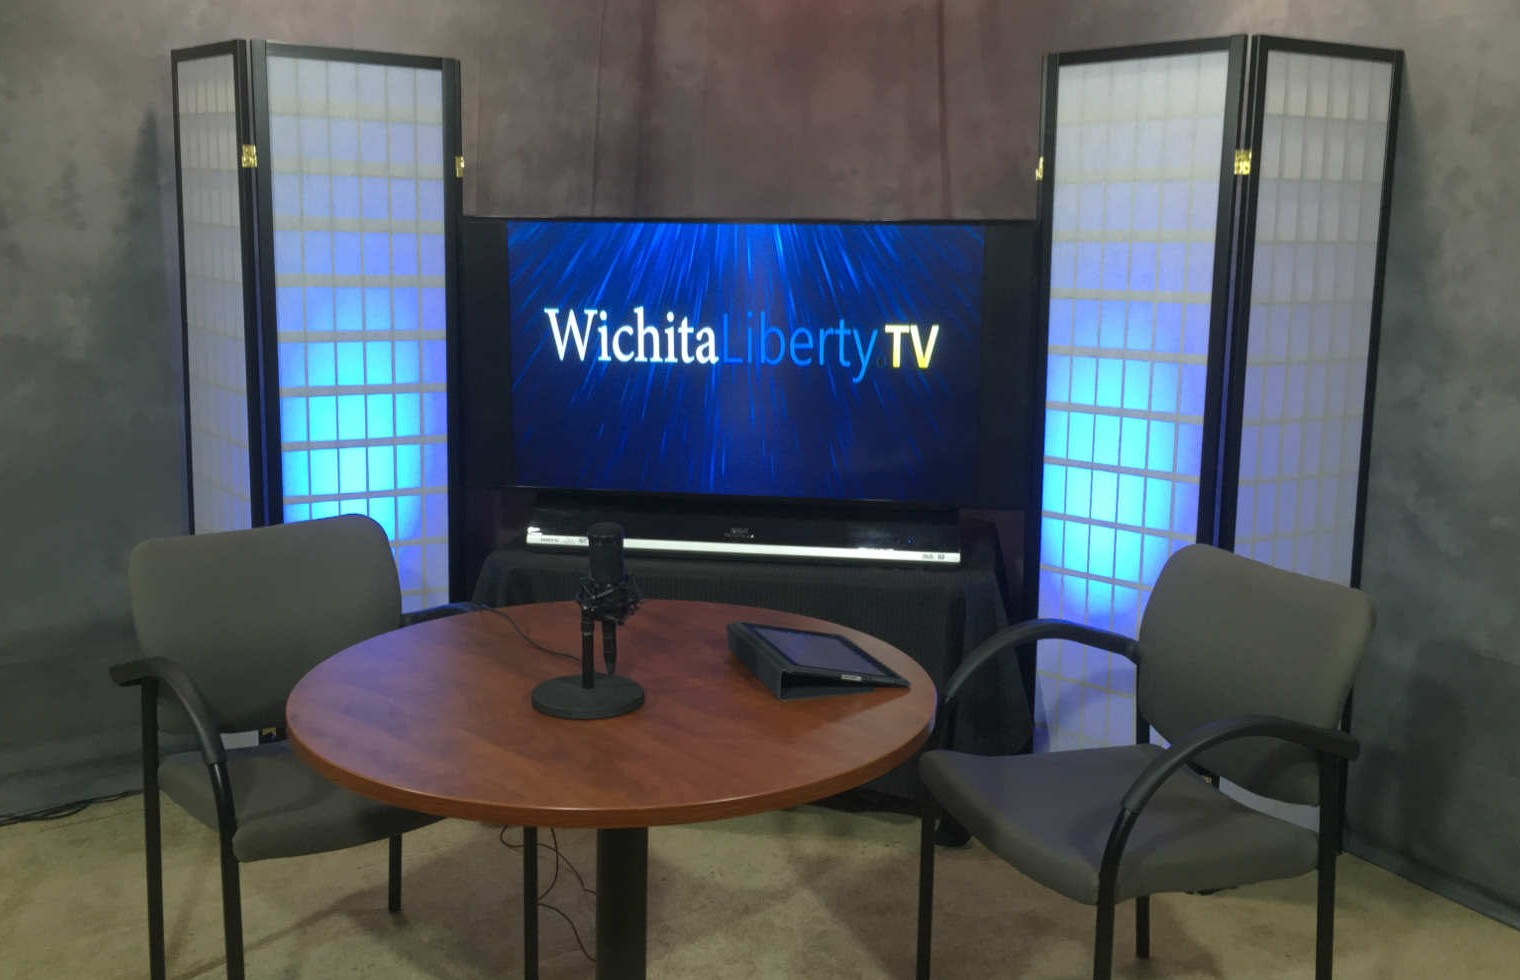 WichitaLiberty.TV: Sales tax exemptions, criminal justice reform, and charity